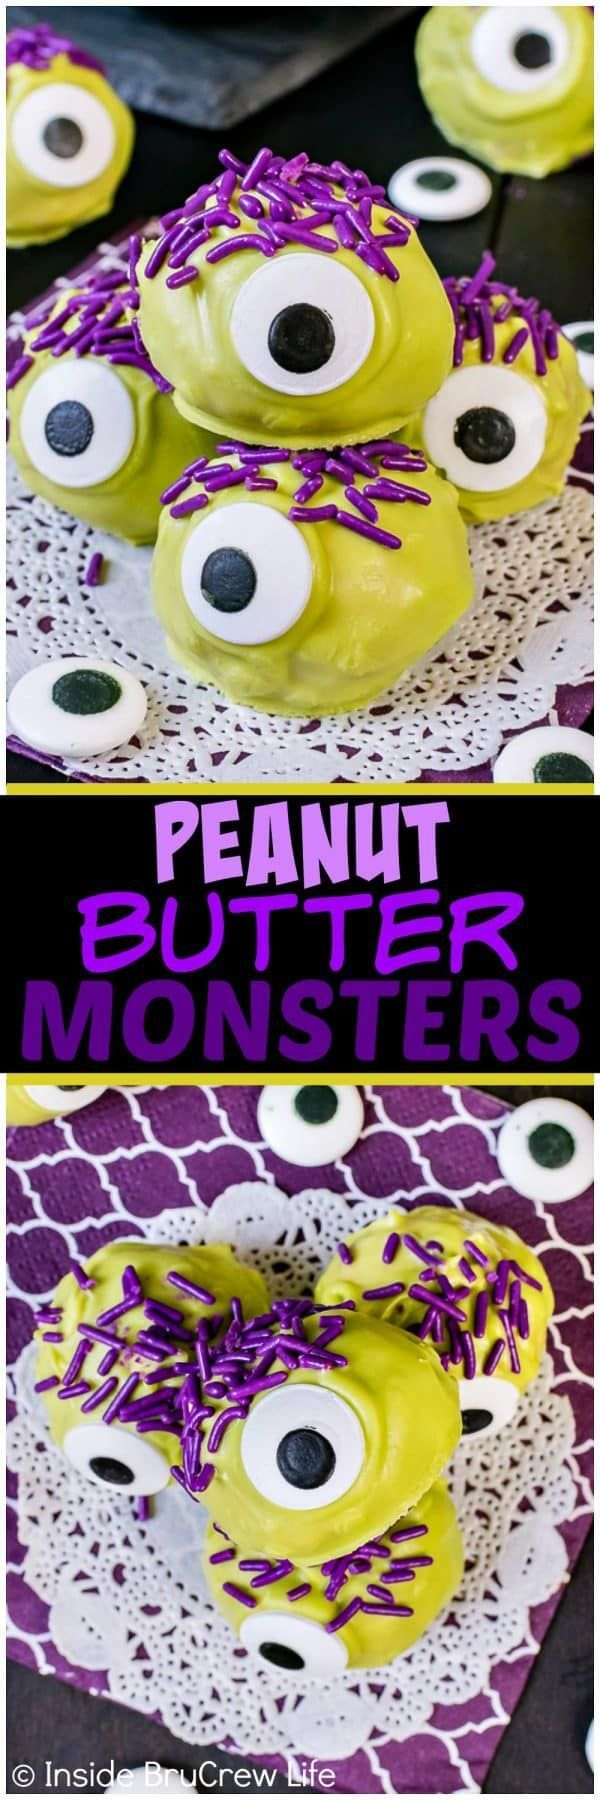 Peanut Butter Monsters - big candy eyes, green chocolate, and purple sprinkles turn these candies into a fun treat. Easy no bake recipe for halloween parties! #peanutbutter #halloween #candy #nobake